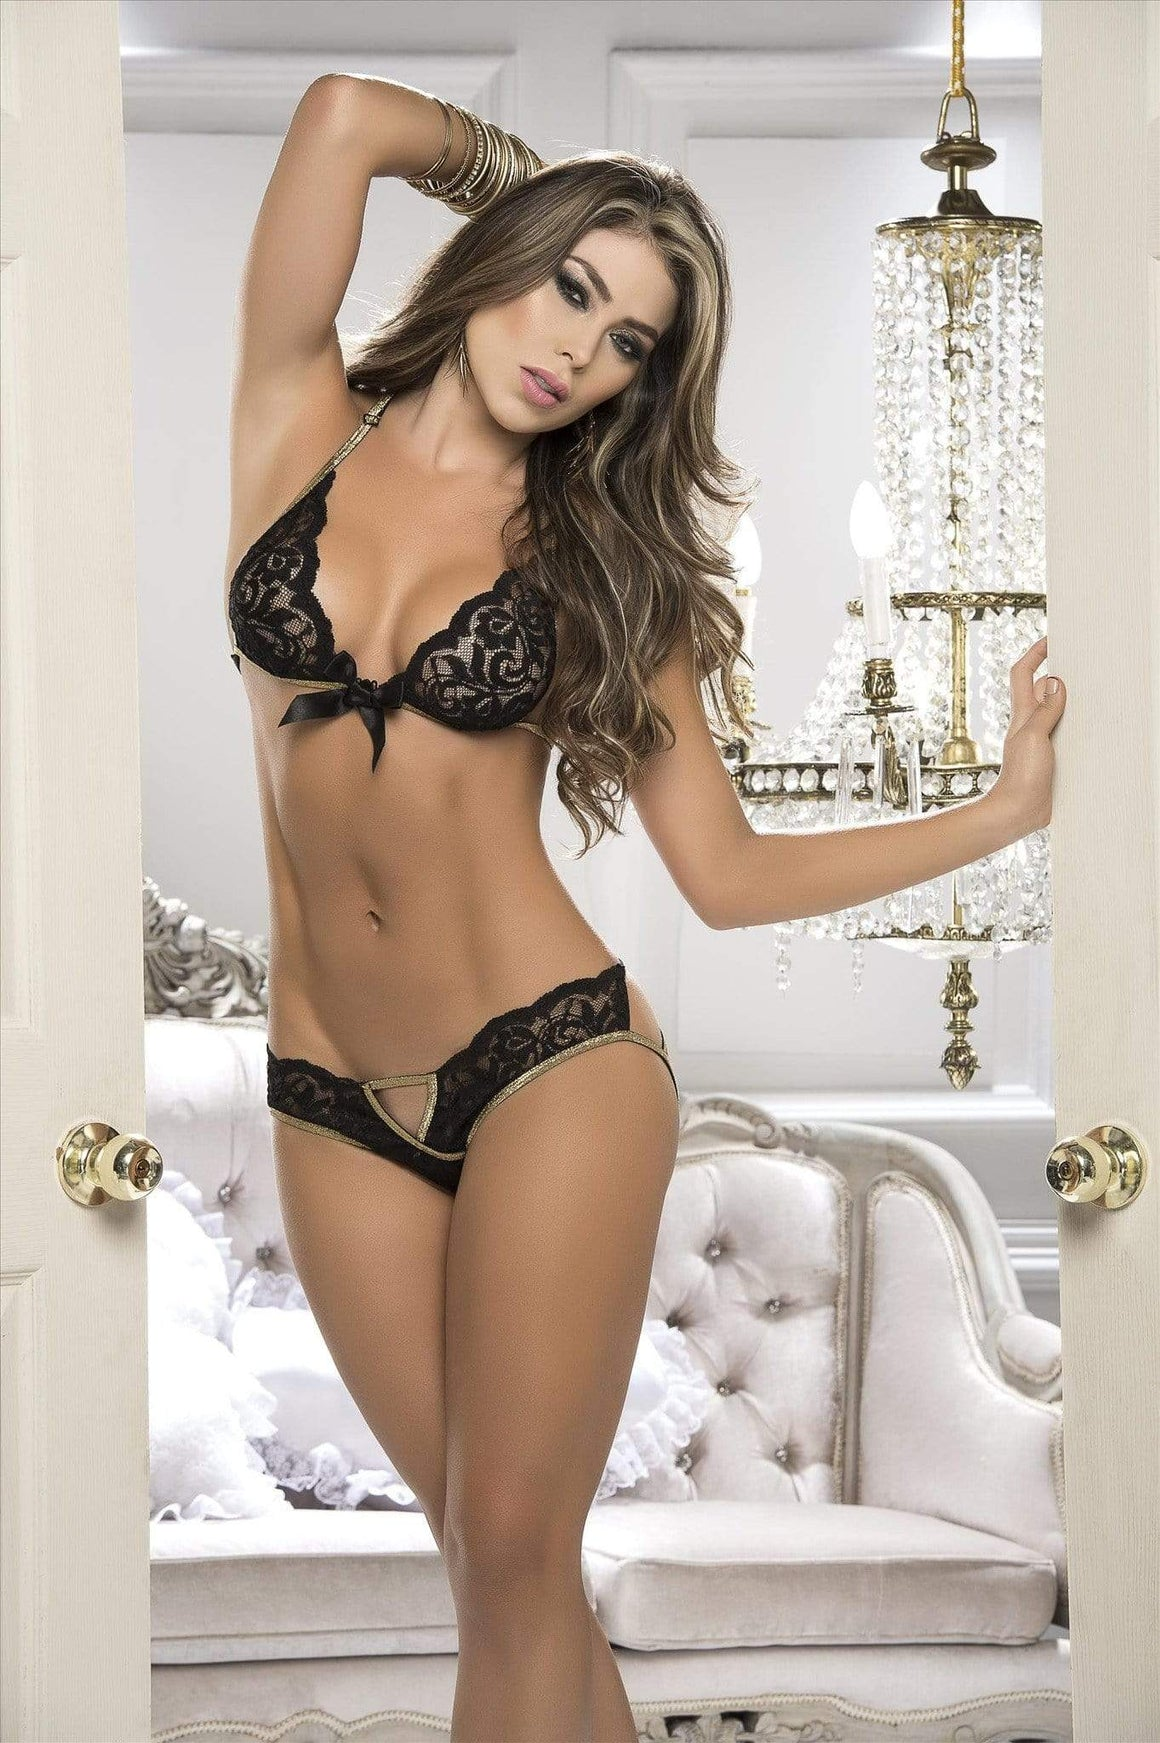 mapale Black Floral 2 Piece Lace Bra & Panty Set (Also in Ivory)  Black Floral 2 Piece Lace Set with Glittering Gold Straps Apparel & Accessories > Clothing > Underwear & Socks > Lingerie